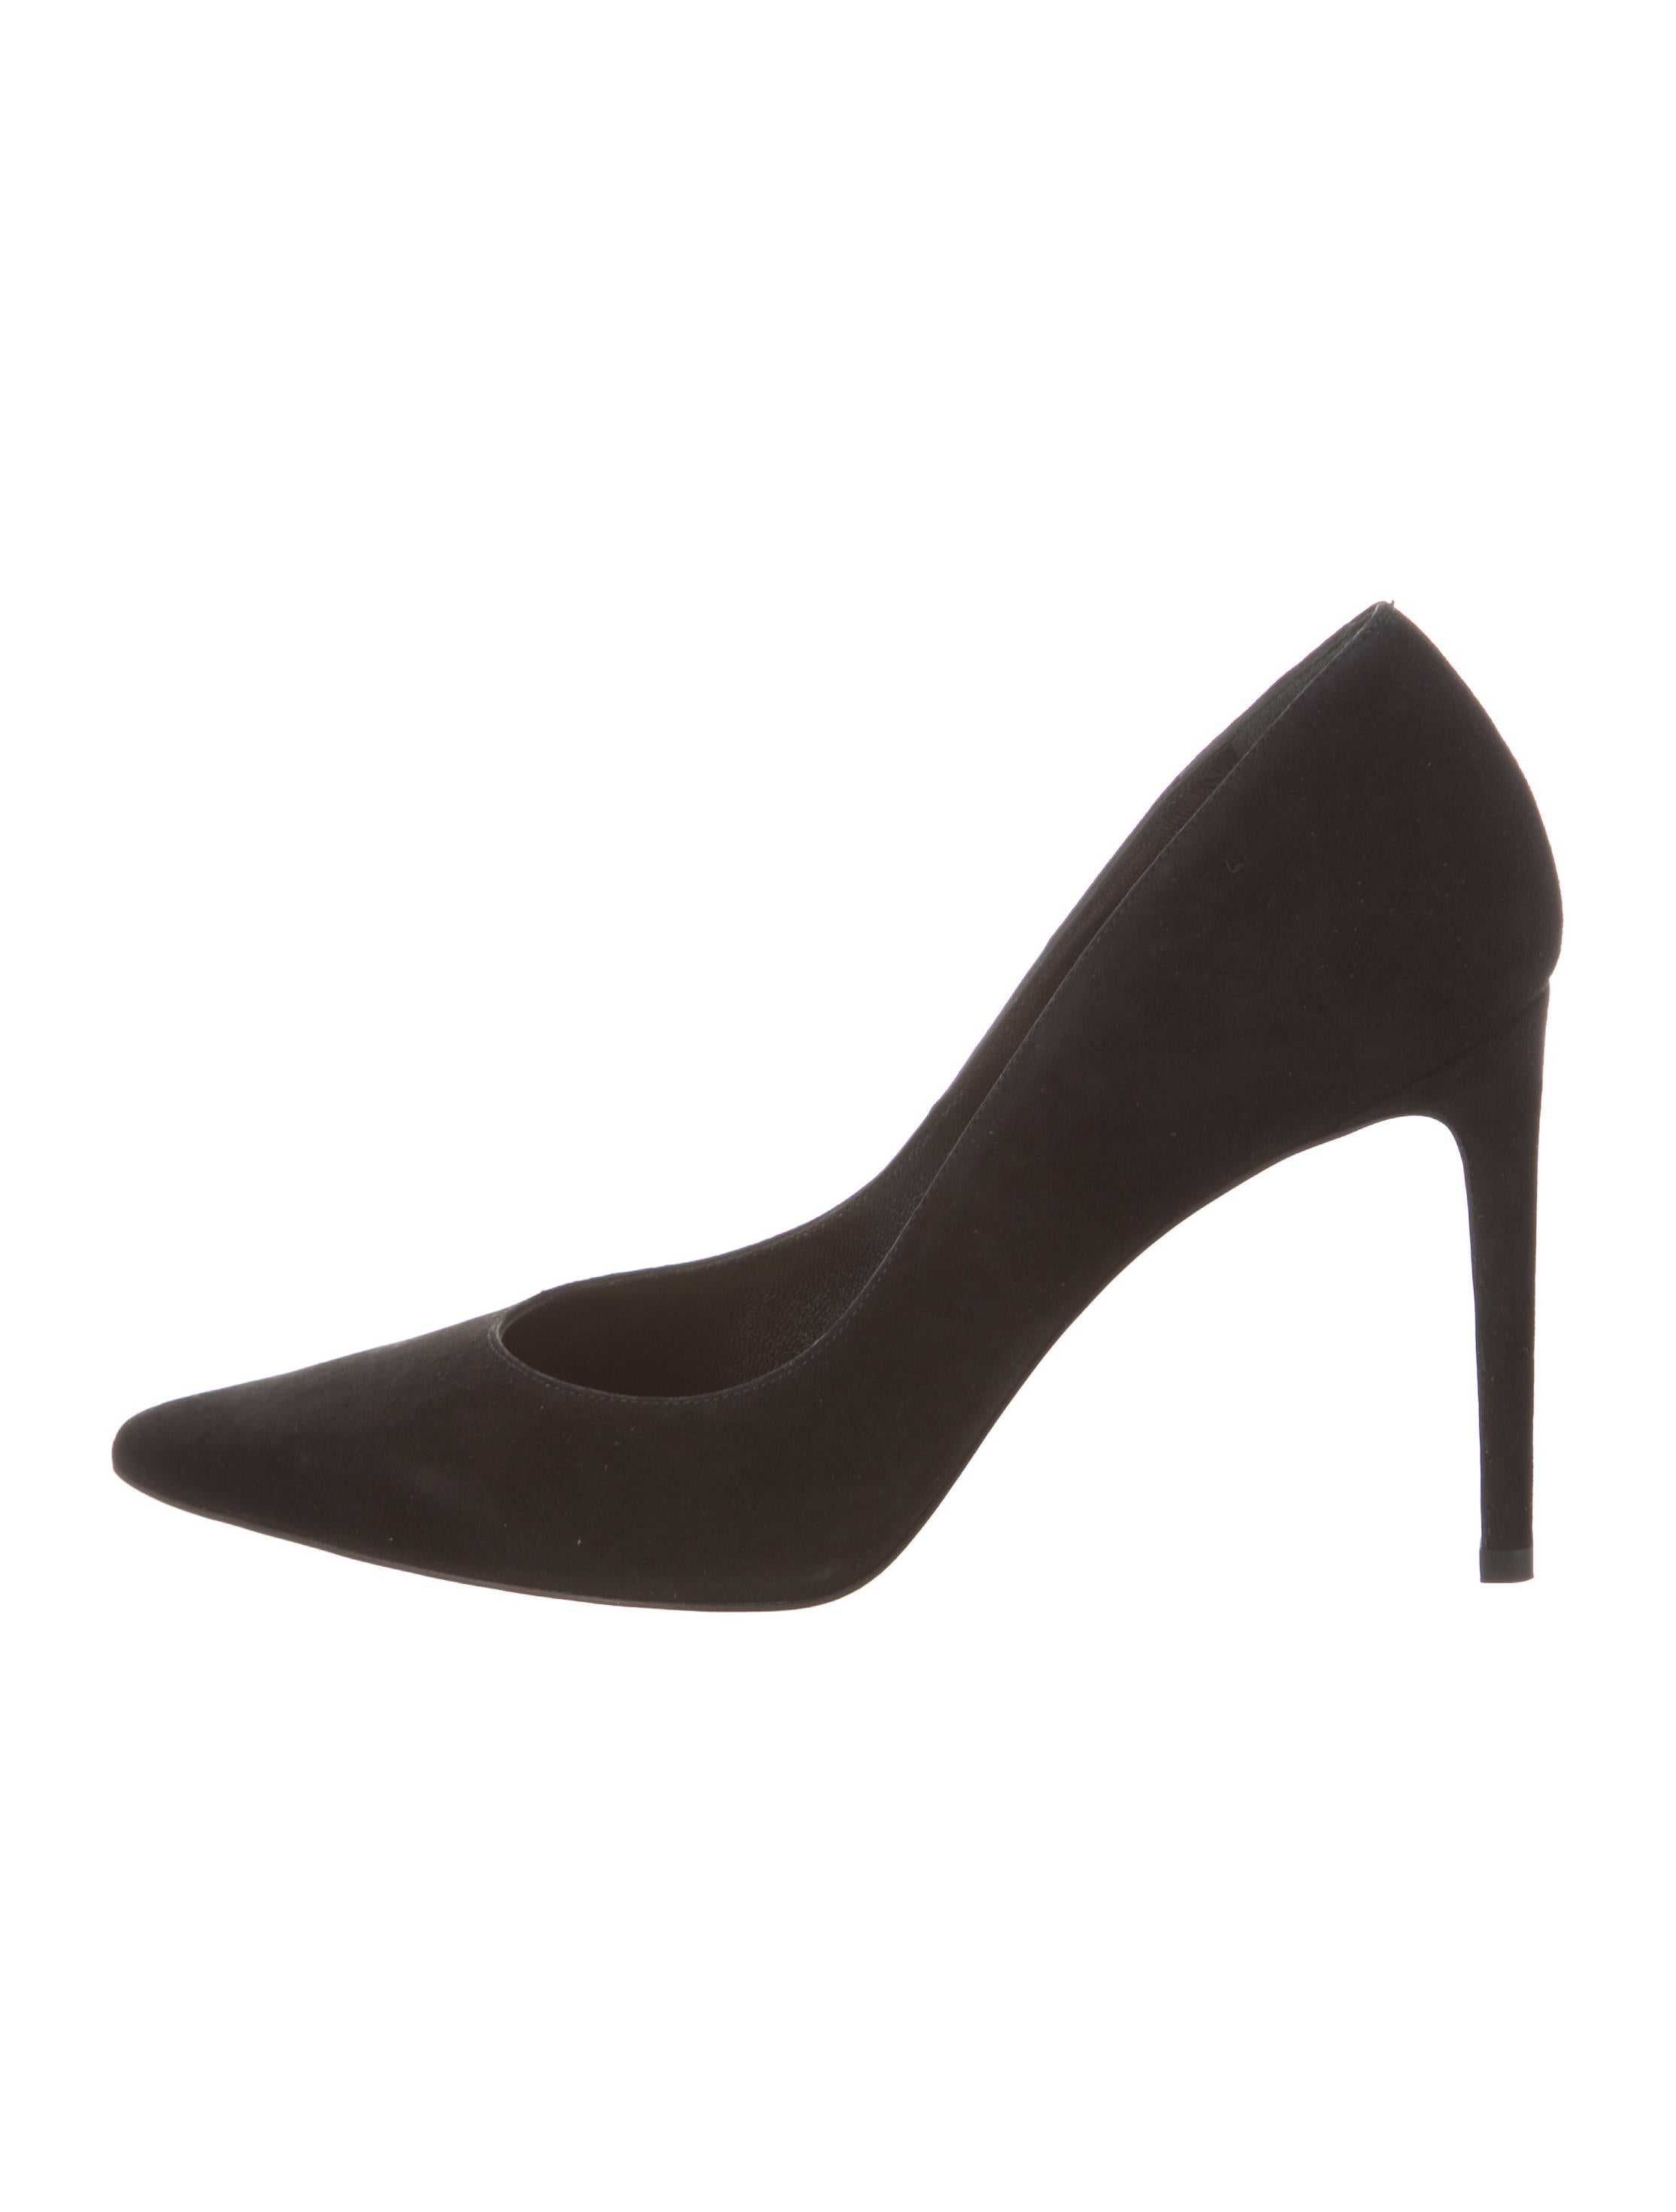 Stuart Weitzman Suede Pointed-Toe w/ Tags cheap amazing price 7lValySFK3